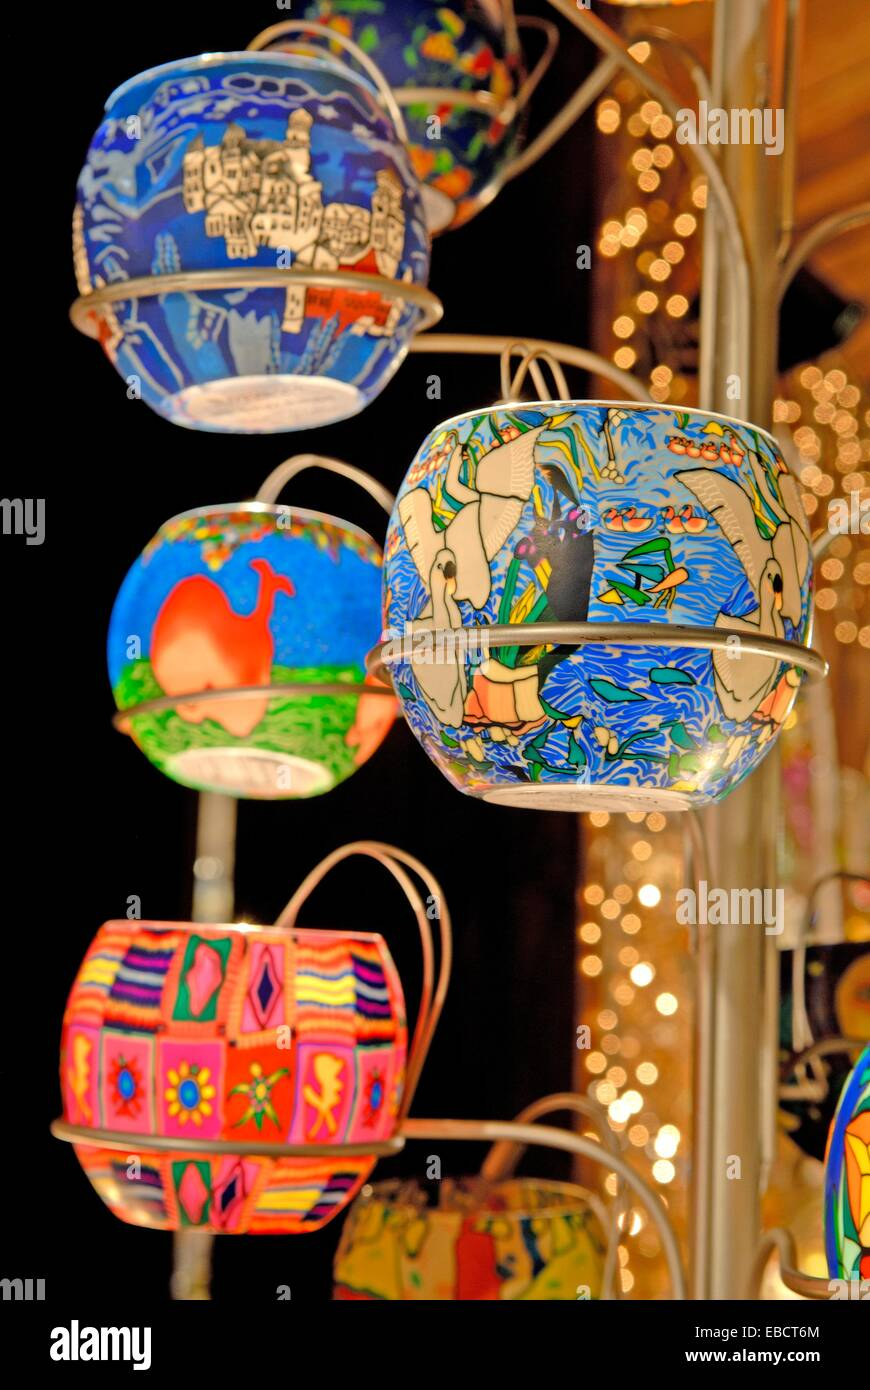 candle holders, Krakow, Poland, Central Europe - Stock Image